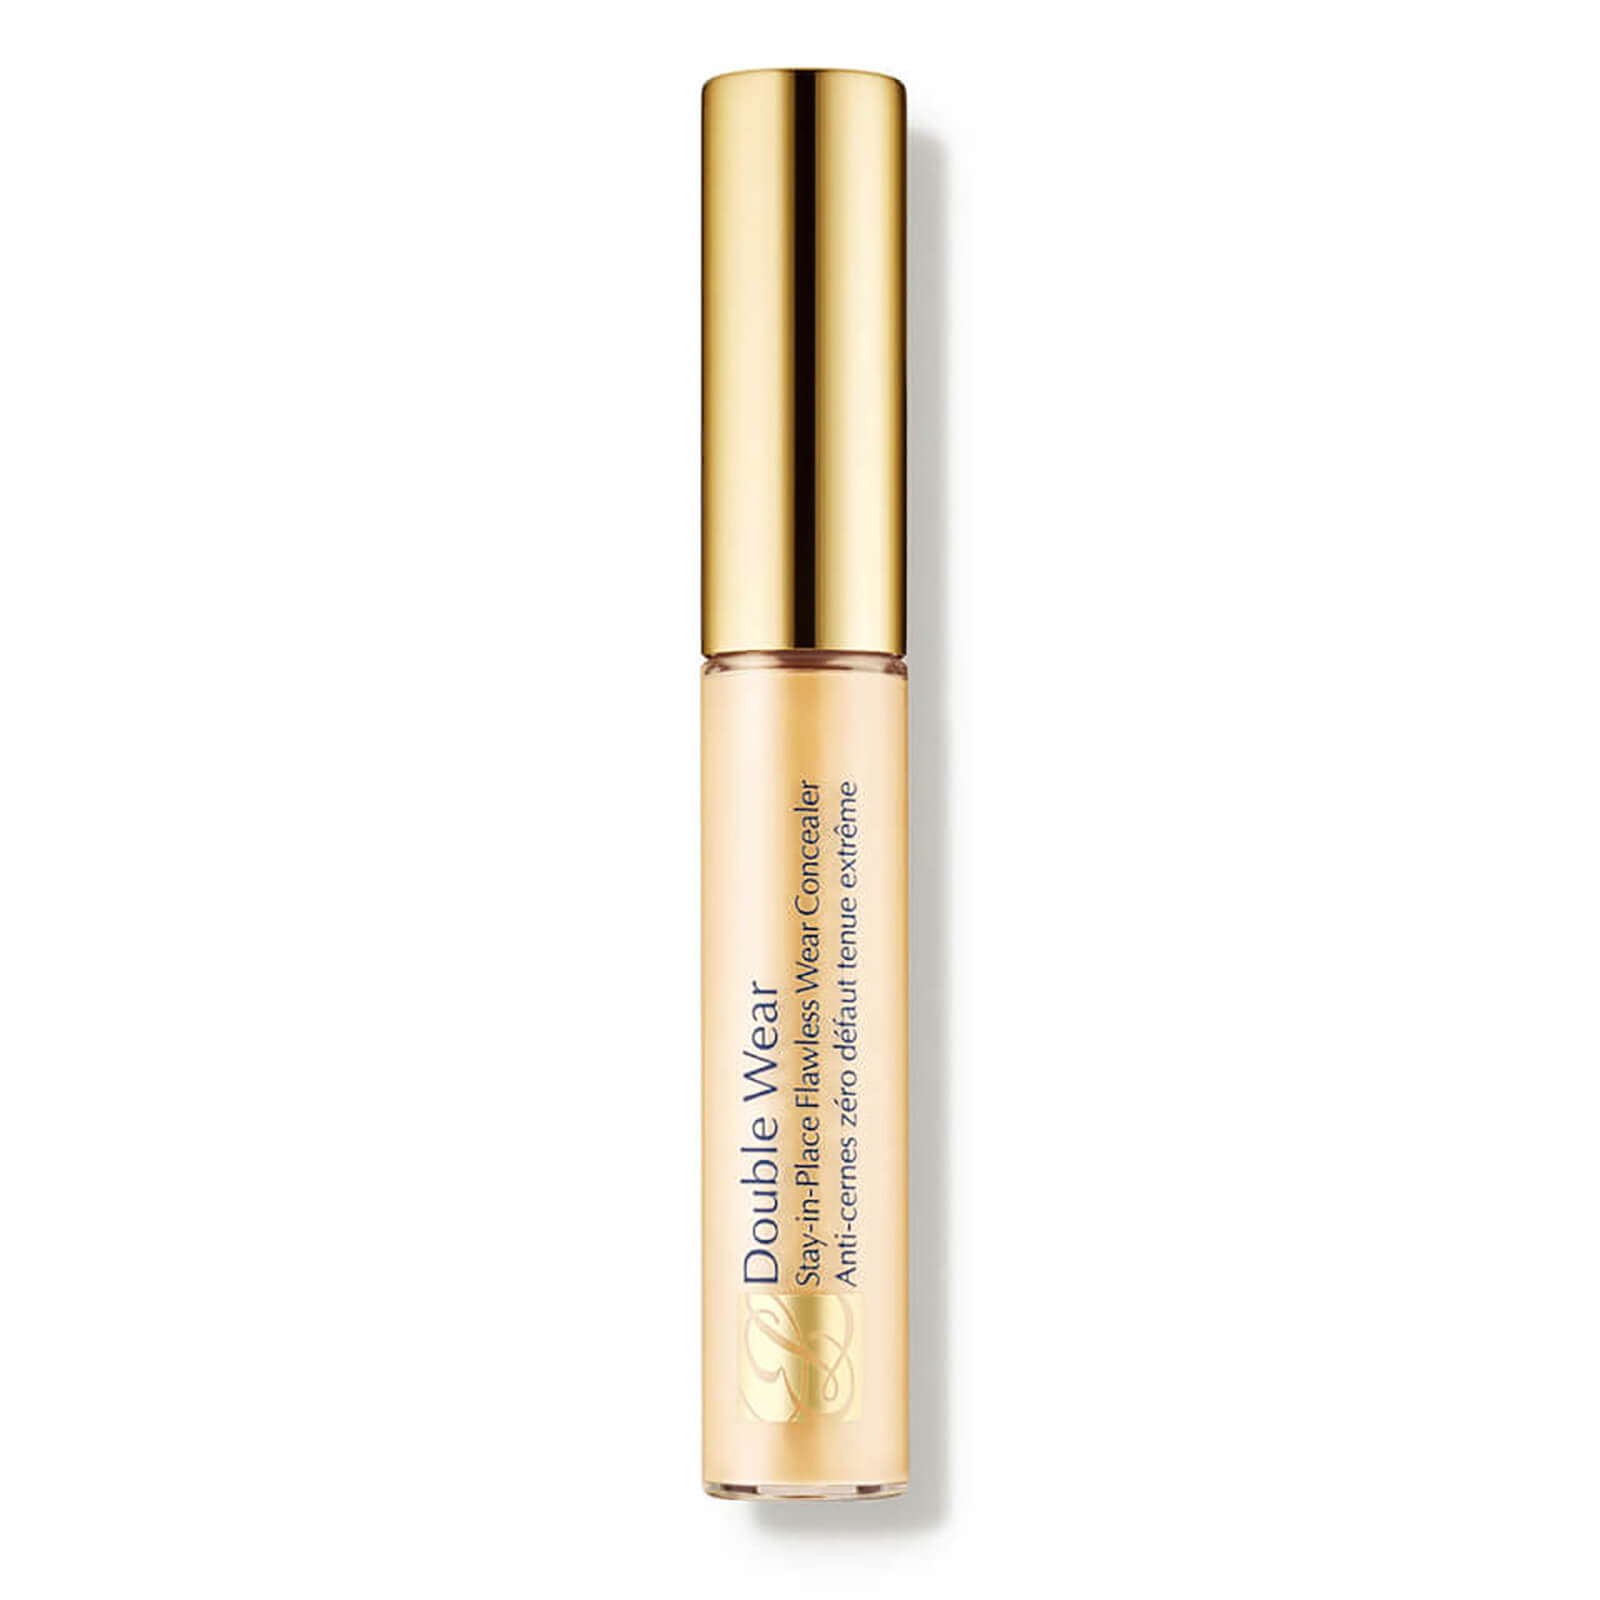 Купить Estée Lauder Double Wear Stay-in-Place Flawless Wear Concealer 7ml (Various Shades) - 1N Extra Light